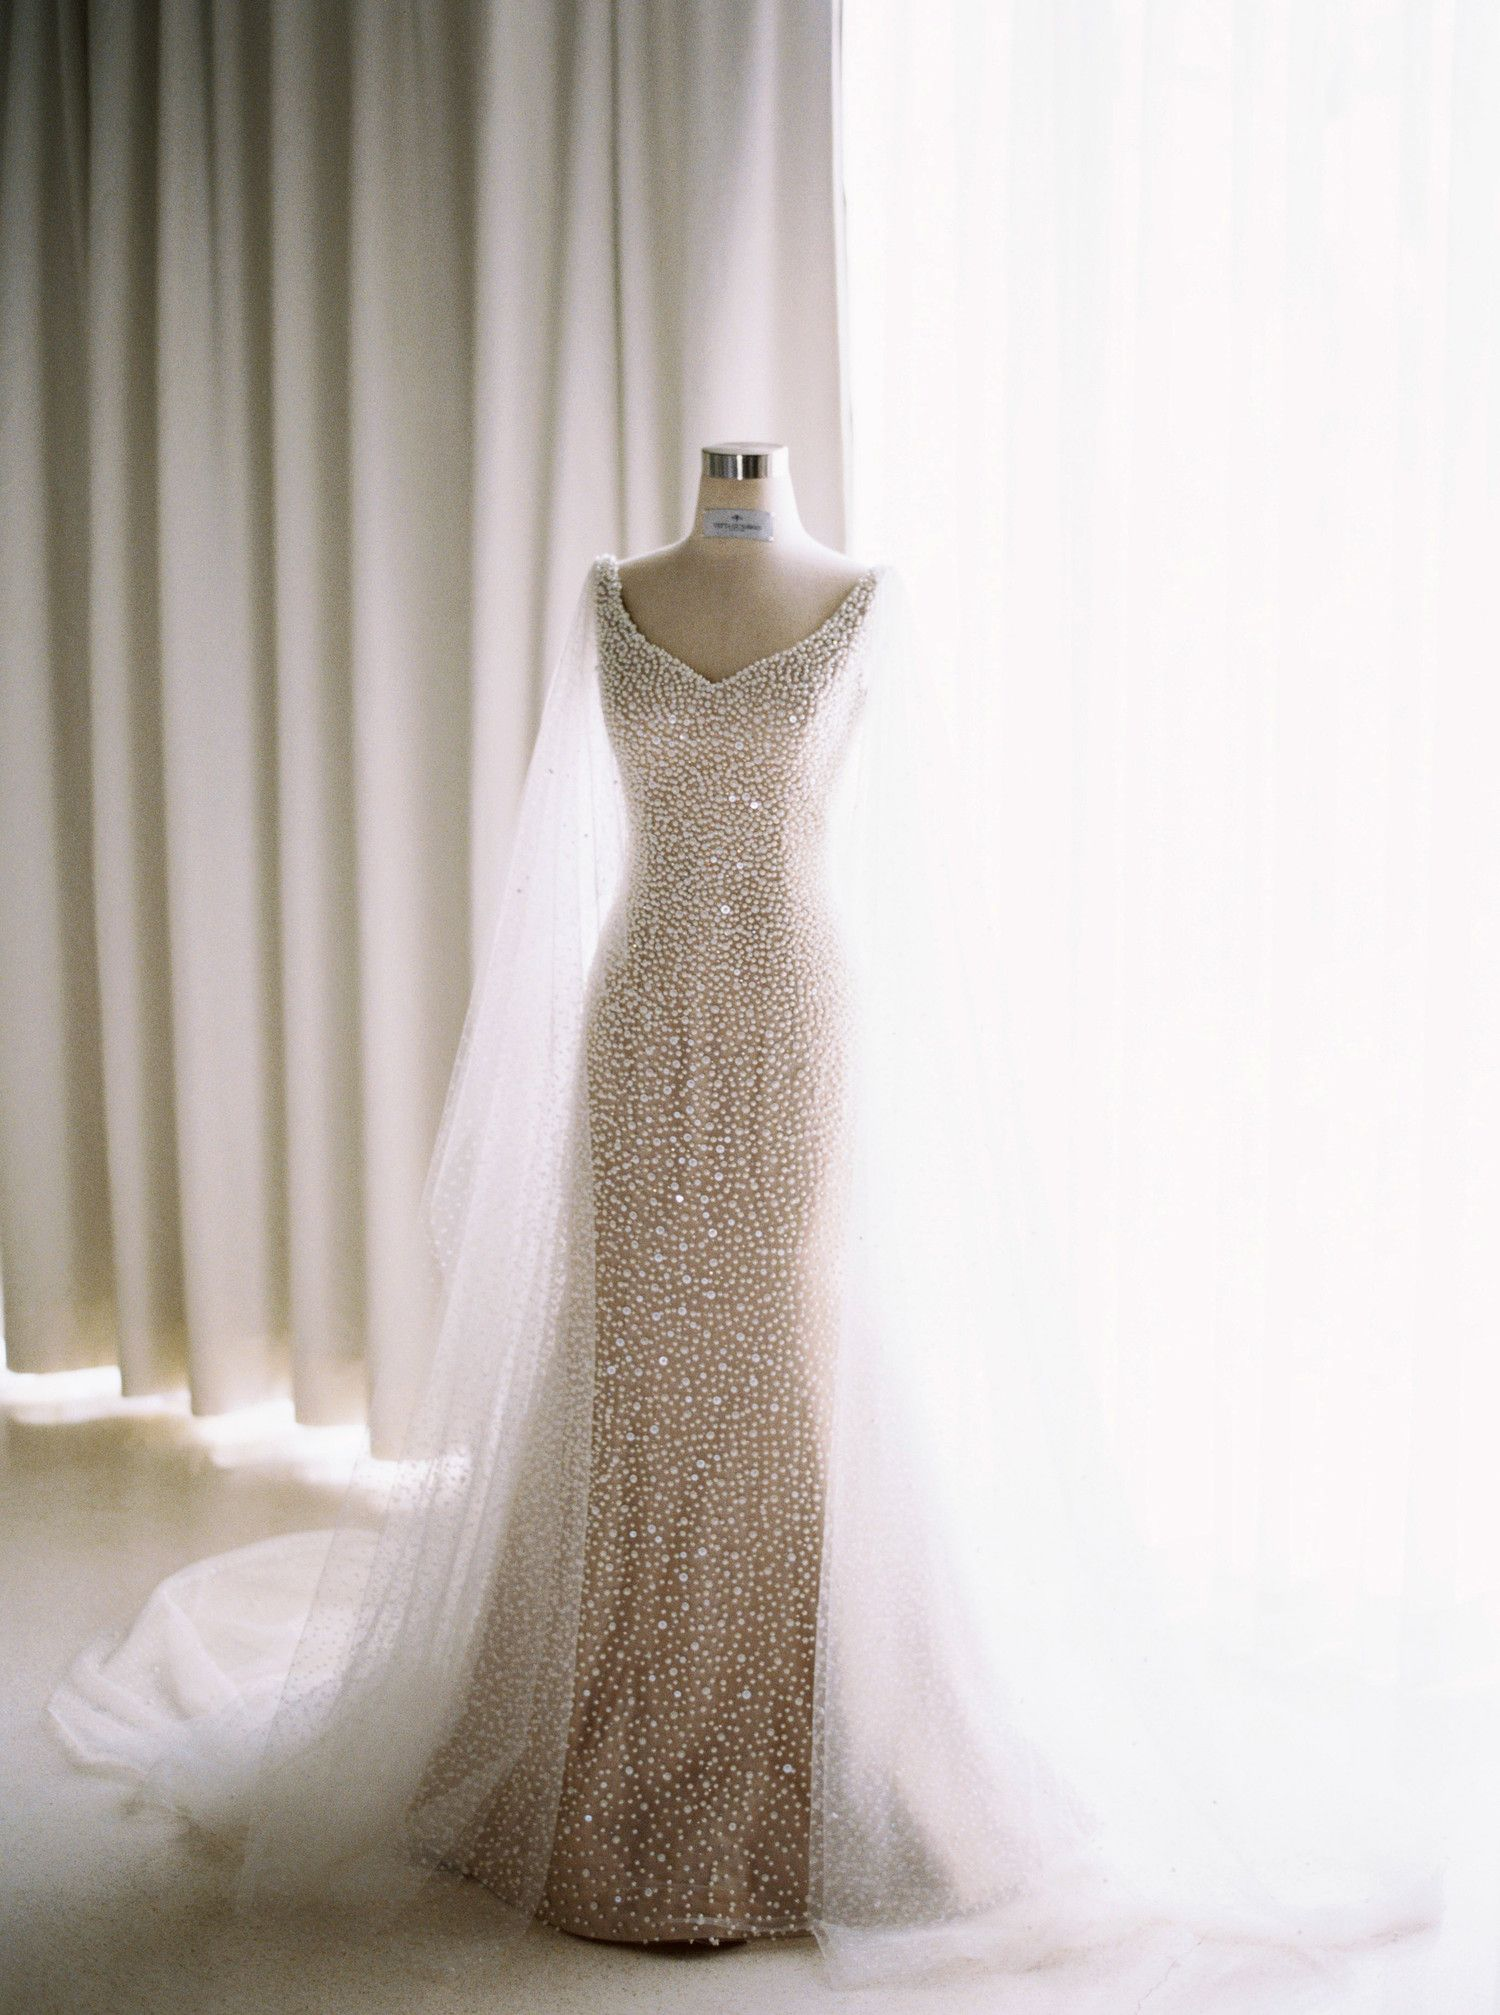 Design your own wedding dress near me  This one featuring a formfitting silhouette slight Vneck and